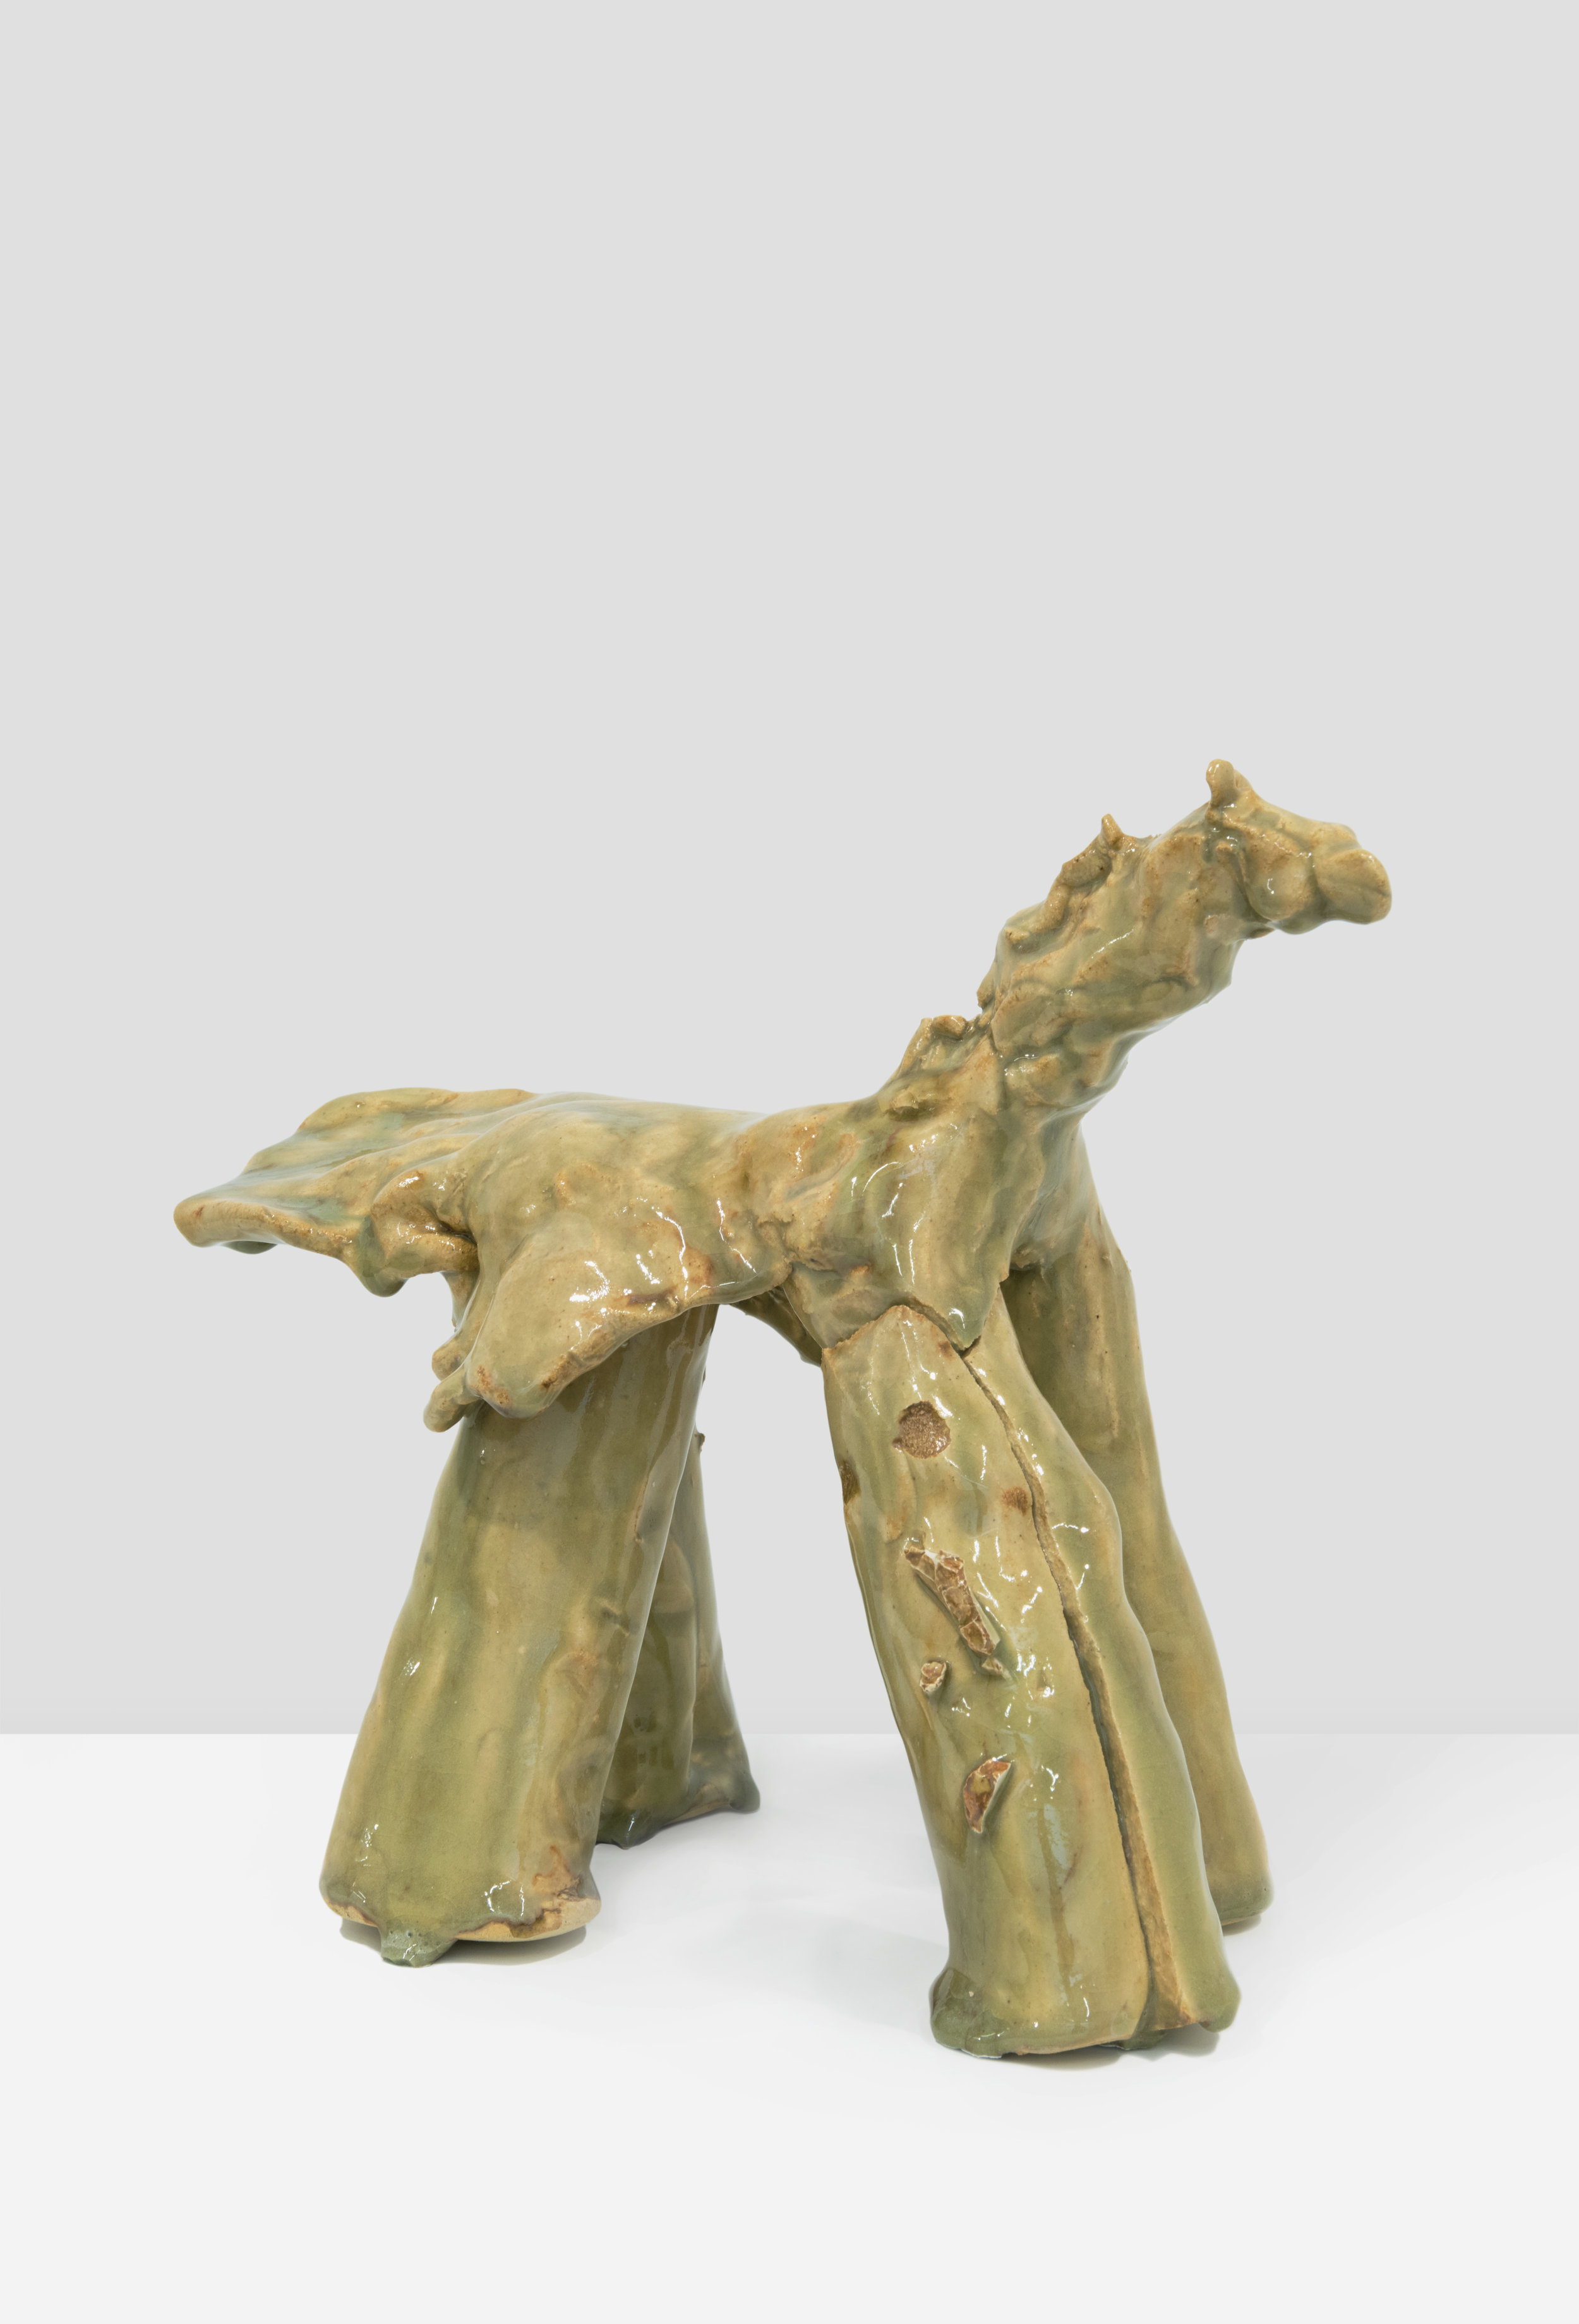 "Simone Fattal. ""Horse."" 2009. Glazed stoneware. 8 x 10 x 5 in. (20.32 x 25.4 x 12.7 cm). Courtesy of the artist and kaufmann repetto, Milan / New York; Balice Hertling, Paris; Karma International, Zurich / Los Angeles"